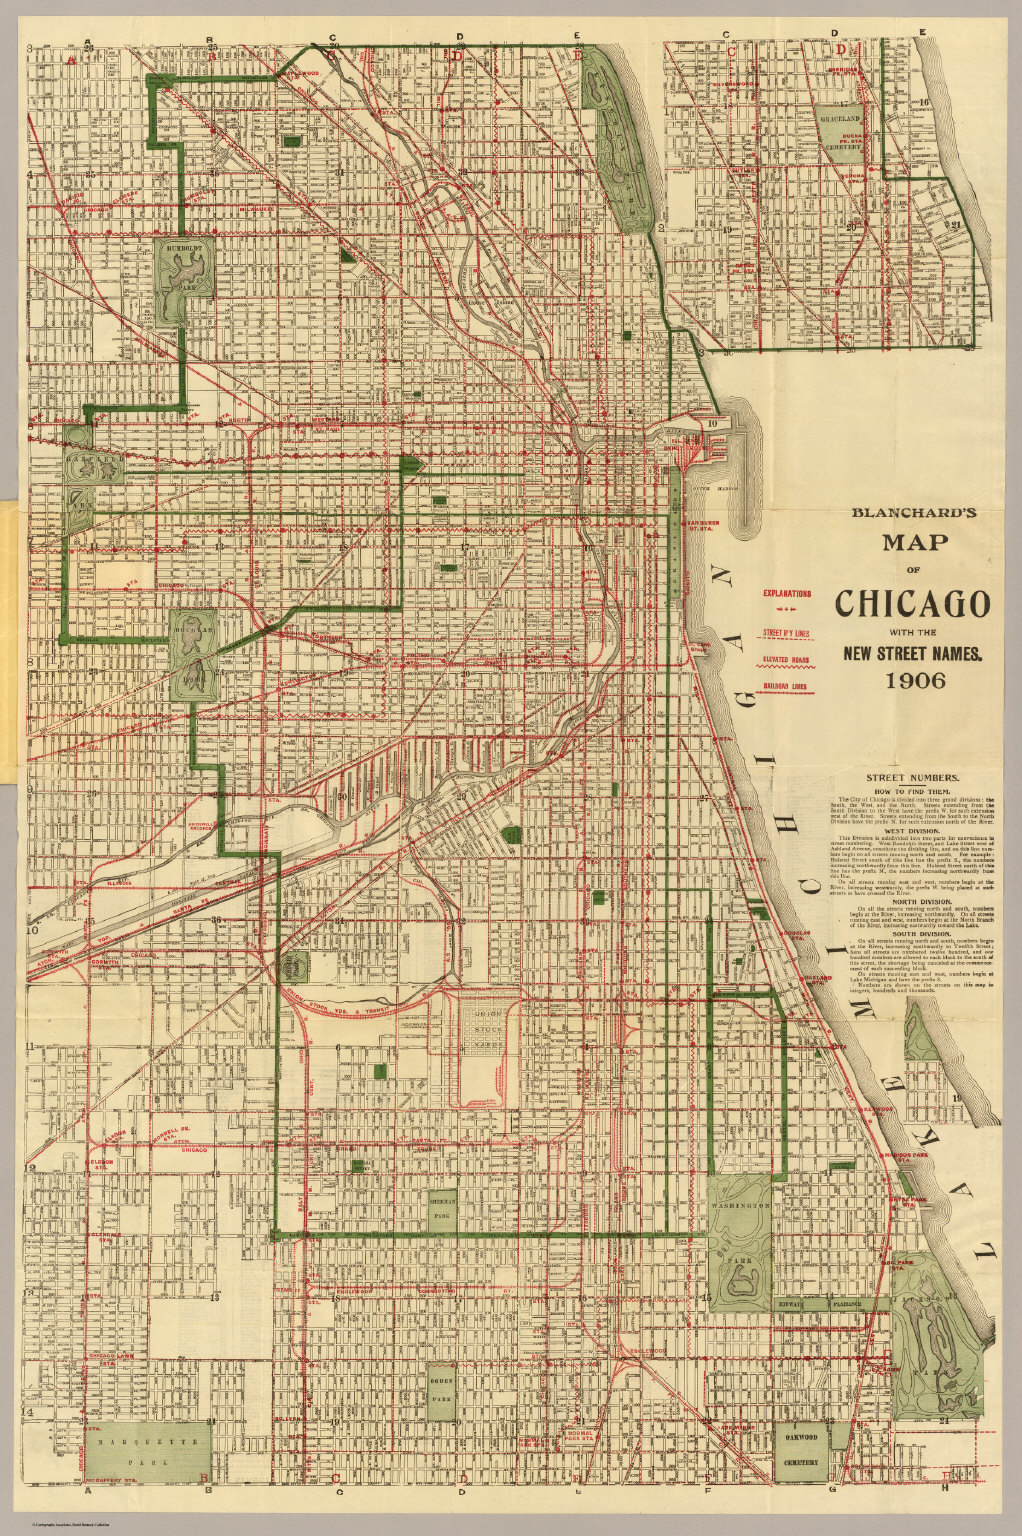 Chicago Street Map Blanchard's map of Chicago.   David Rumsey Historical Map Collection Chicago Street Map